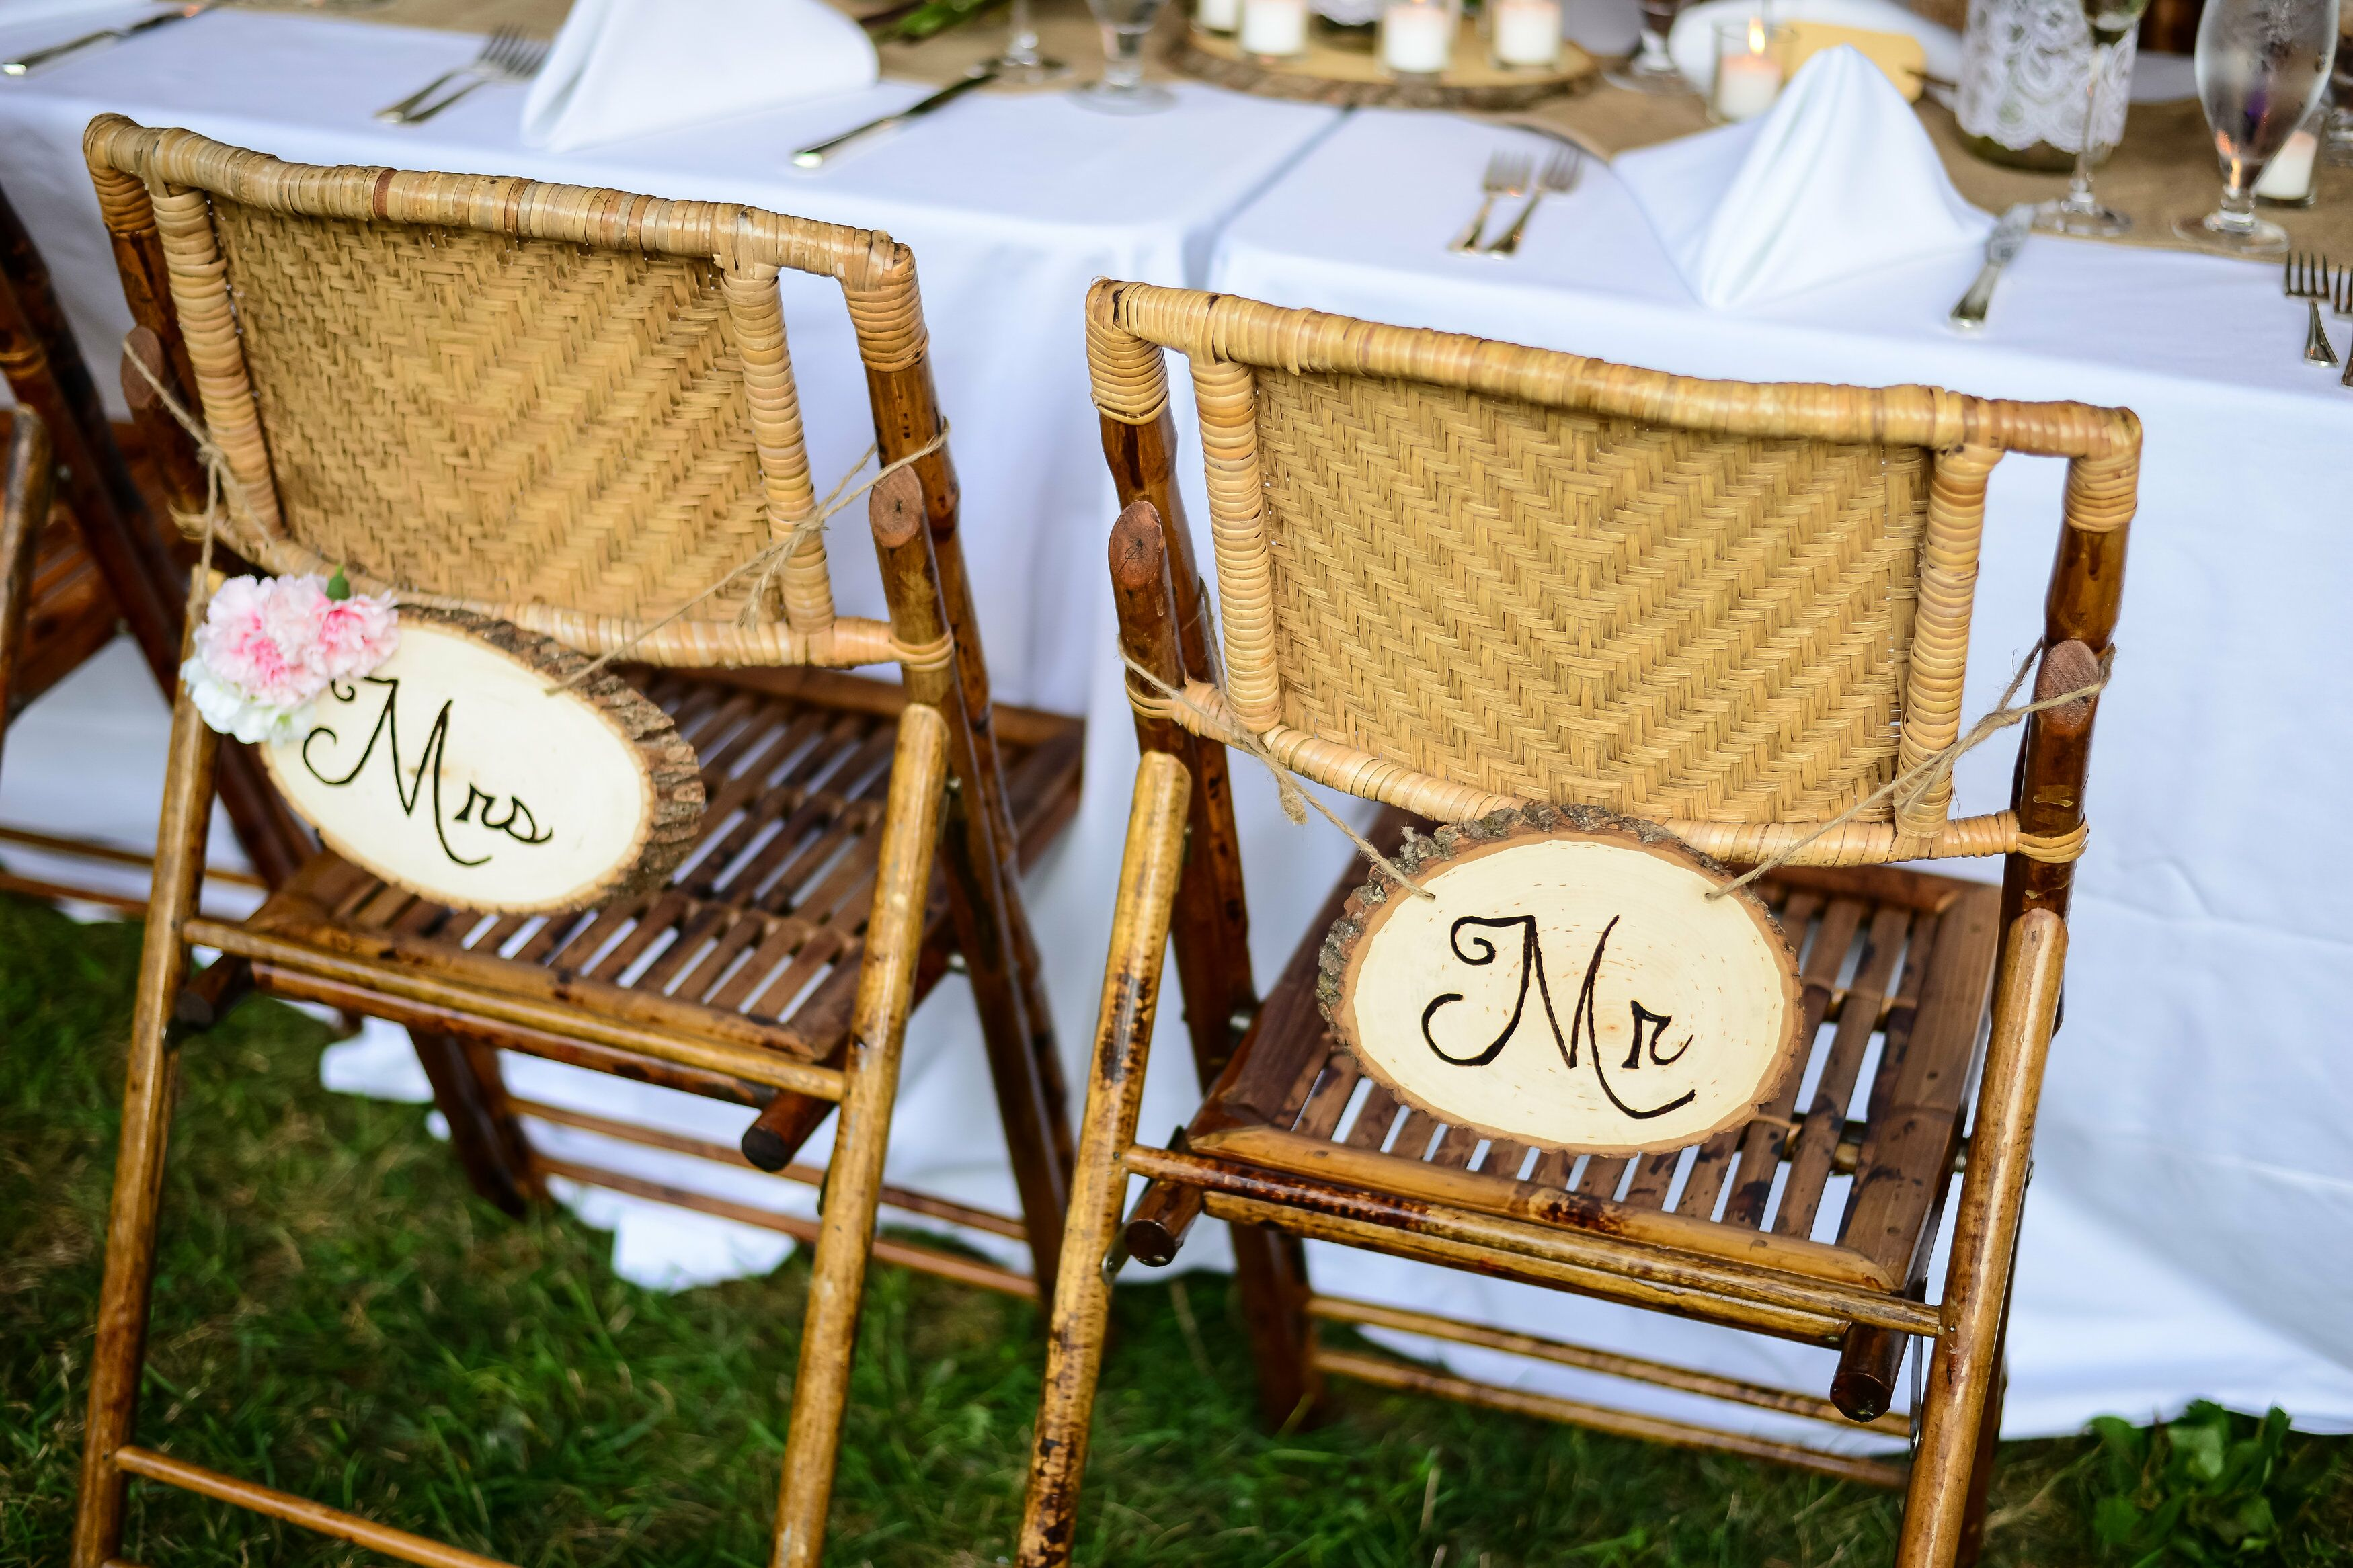 DIY Burned Wood Mr. And Mrs. Chair Signs